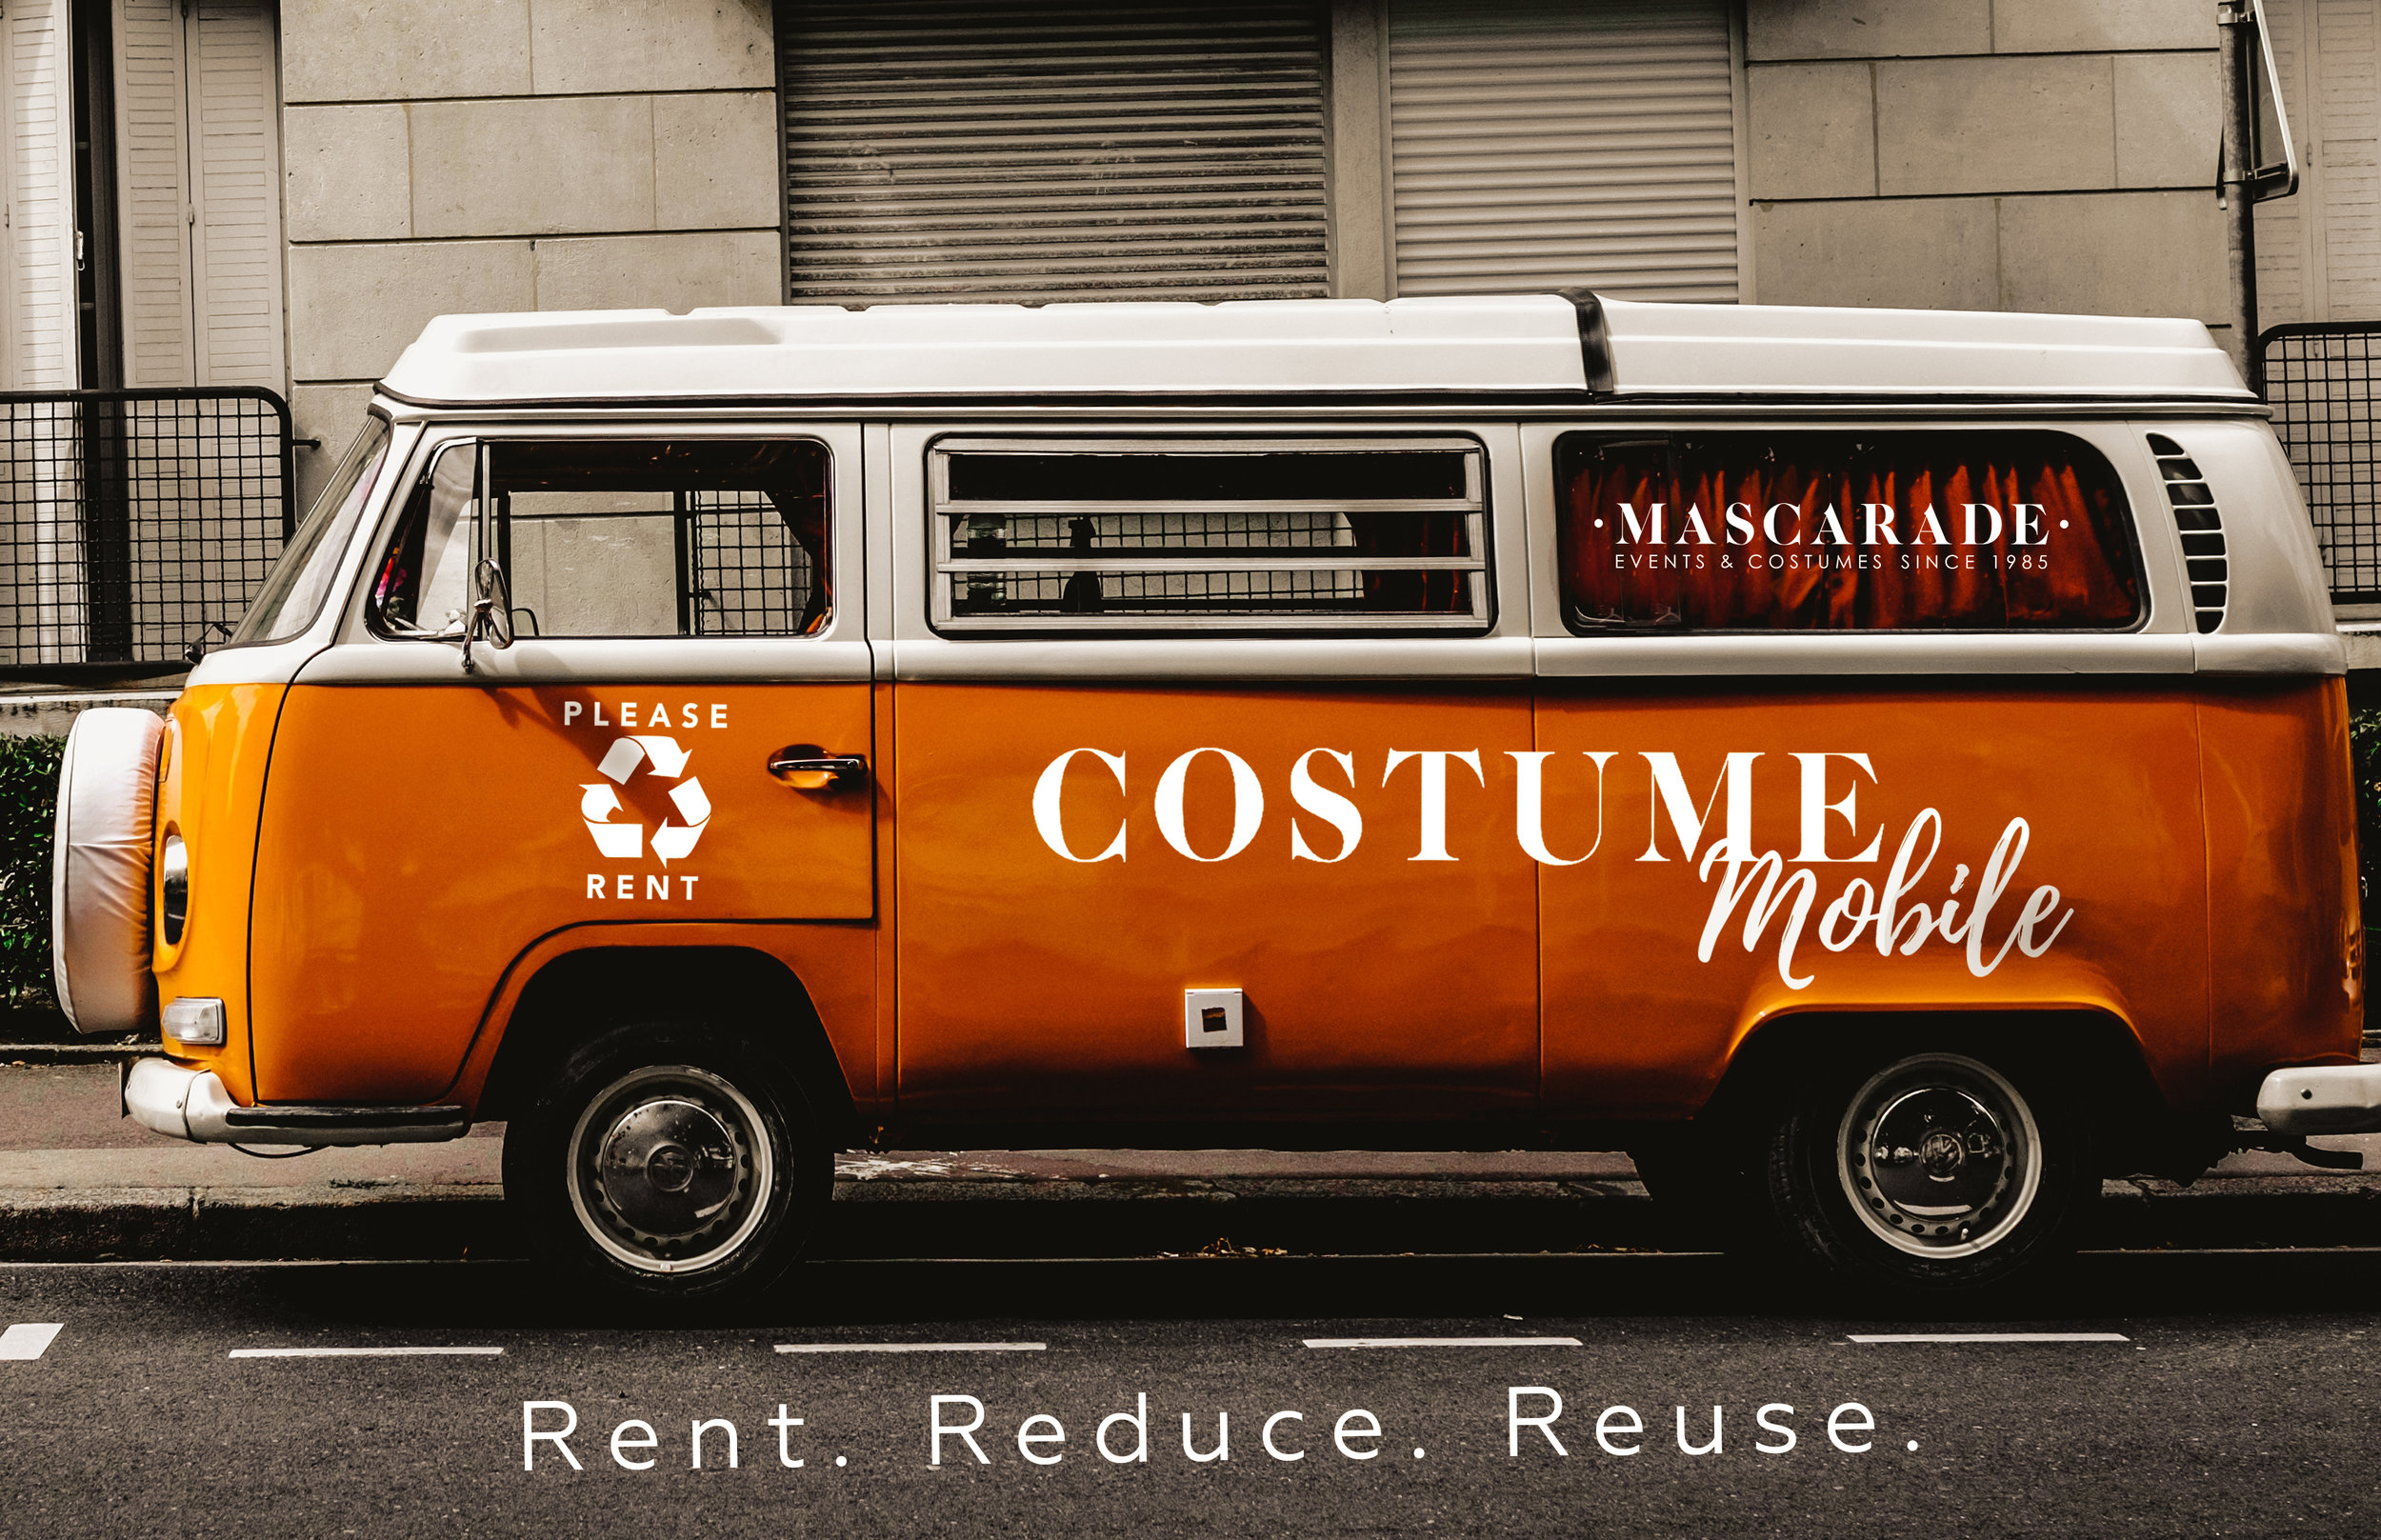 COSTUMEmobile - We bring the costumes to your party, unforgettable moments guaranteed.